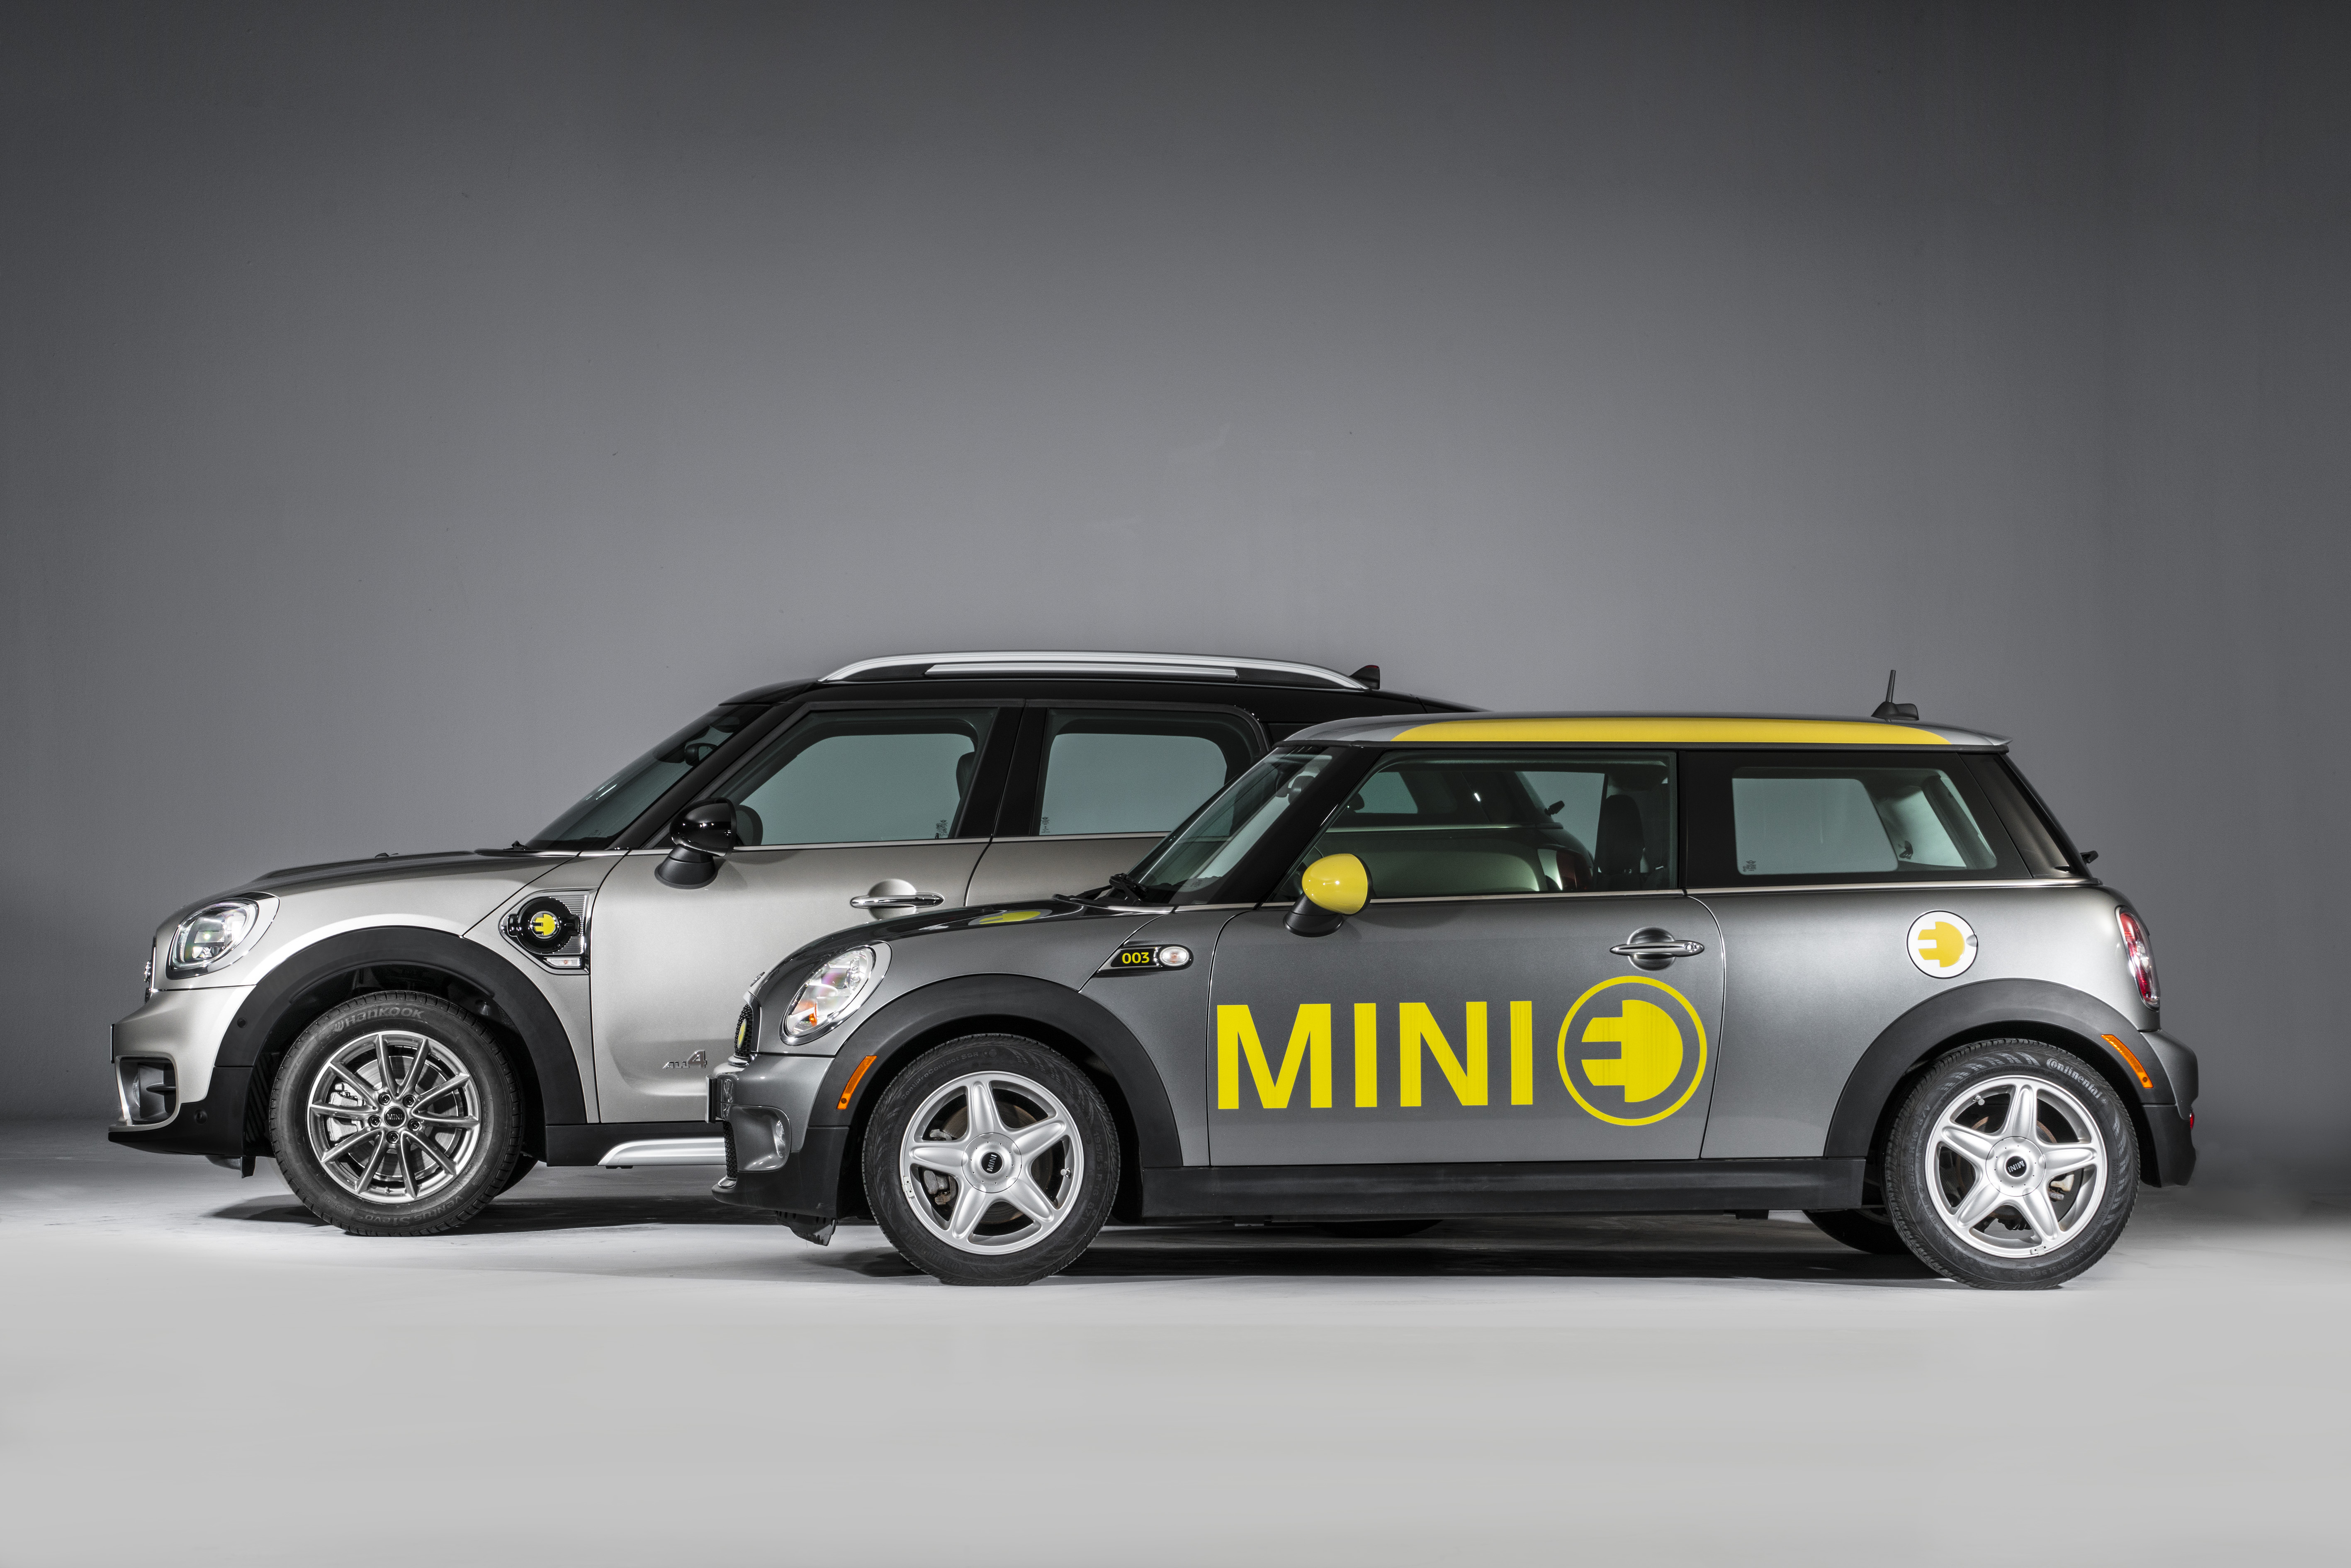 MINI e y MINI Countryman enchufable